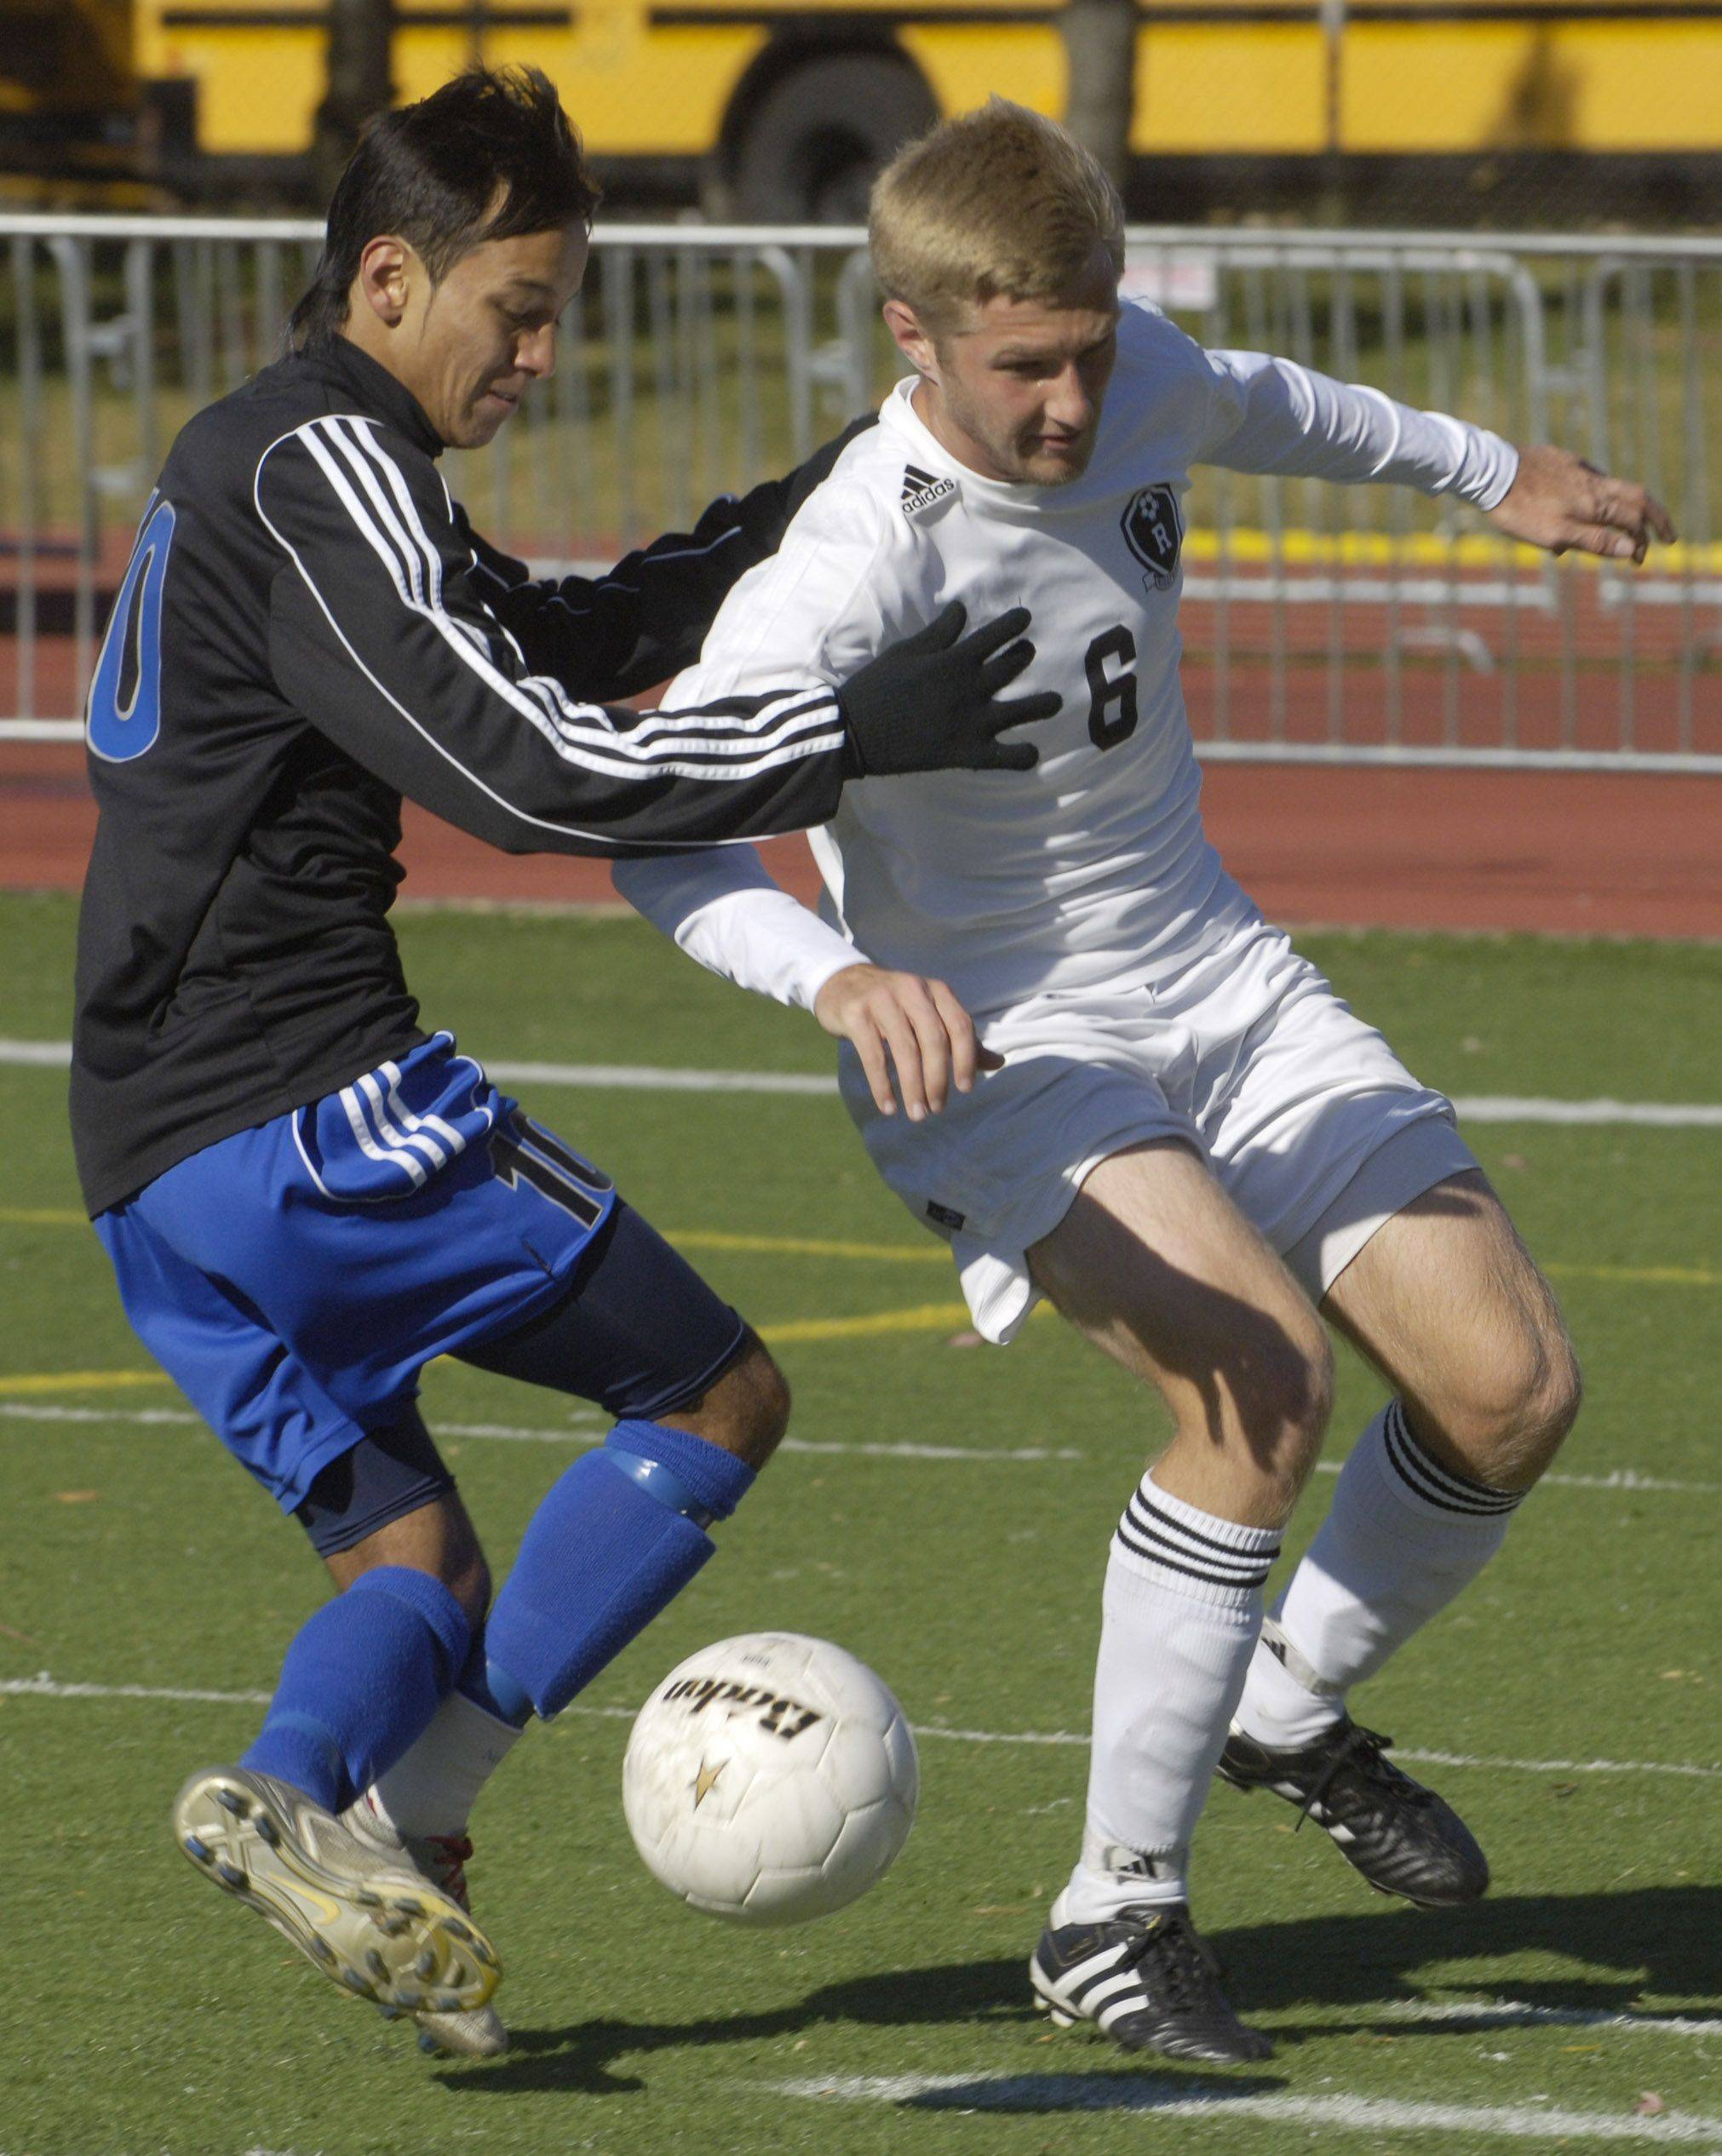 Alexis Camarena of Burlington Central, left, makes contact with Mike Kuczek of Ridgewood.